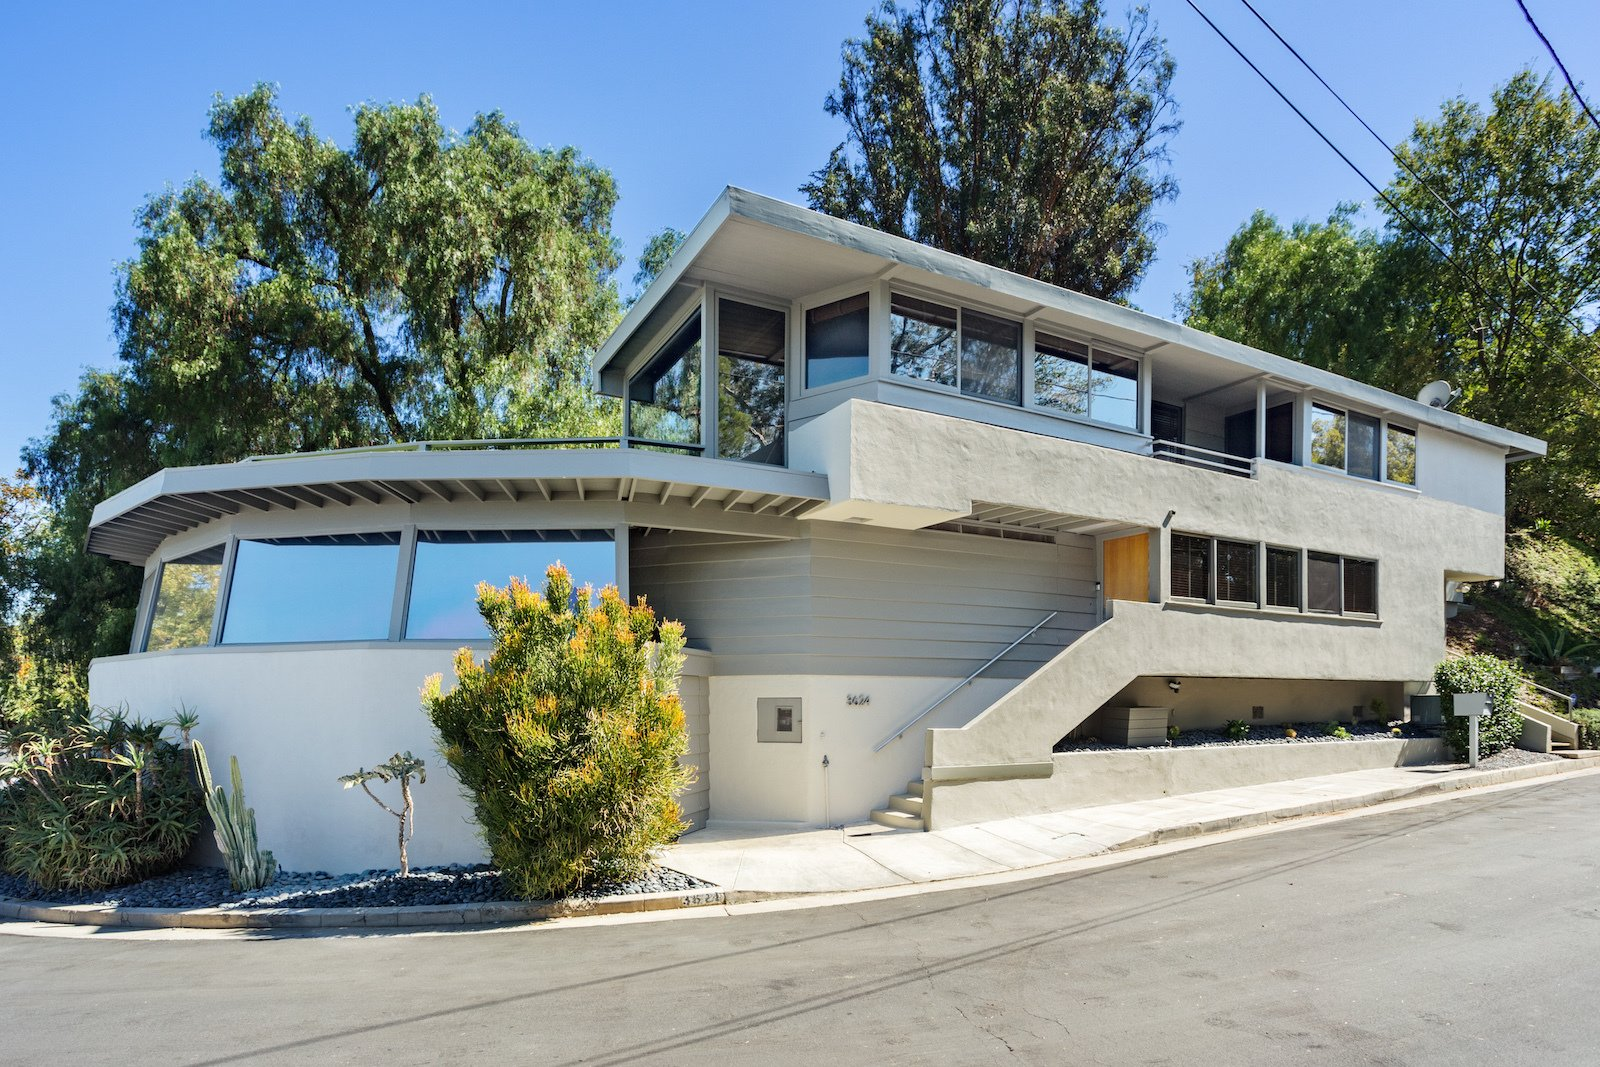 Exterior, House Building Type, and Mid-Century Building Type  Photo 6 of 17 in A Midcentury Schindler Gem With a Writer's Studio Asks $2.3M